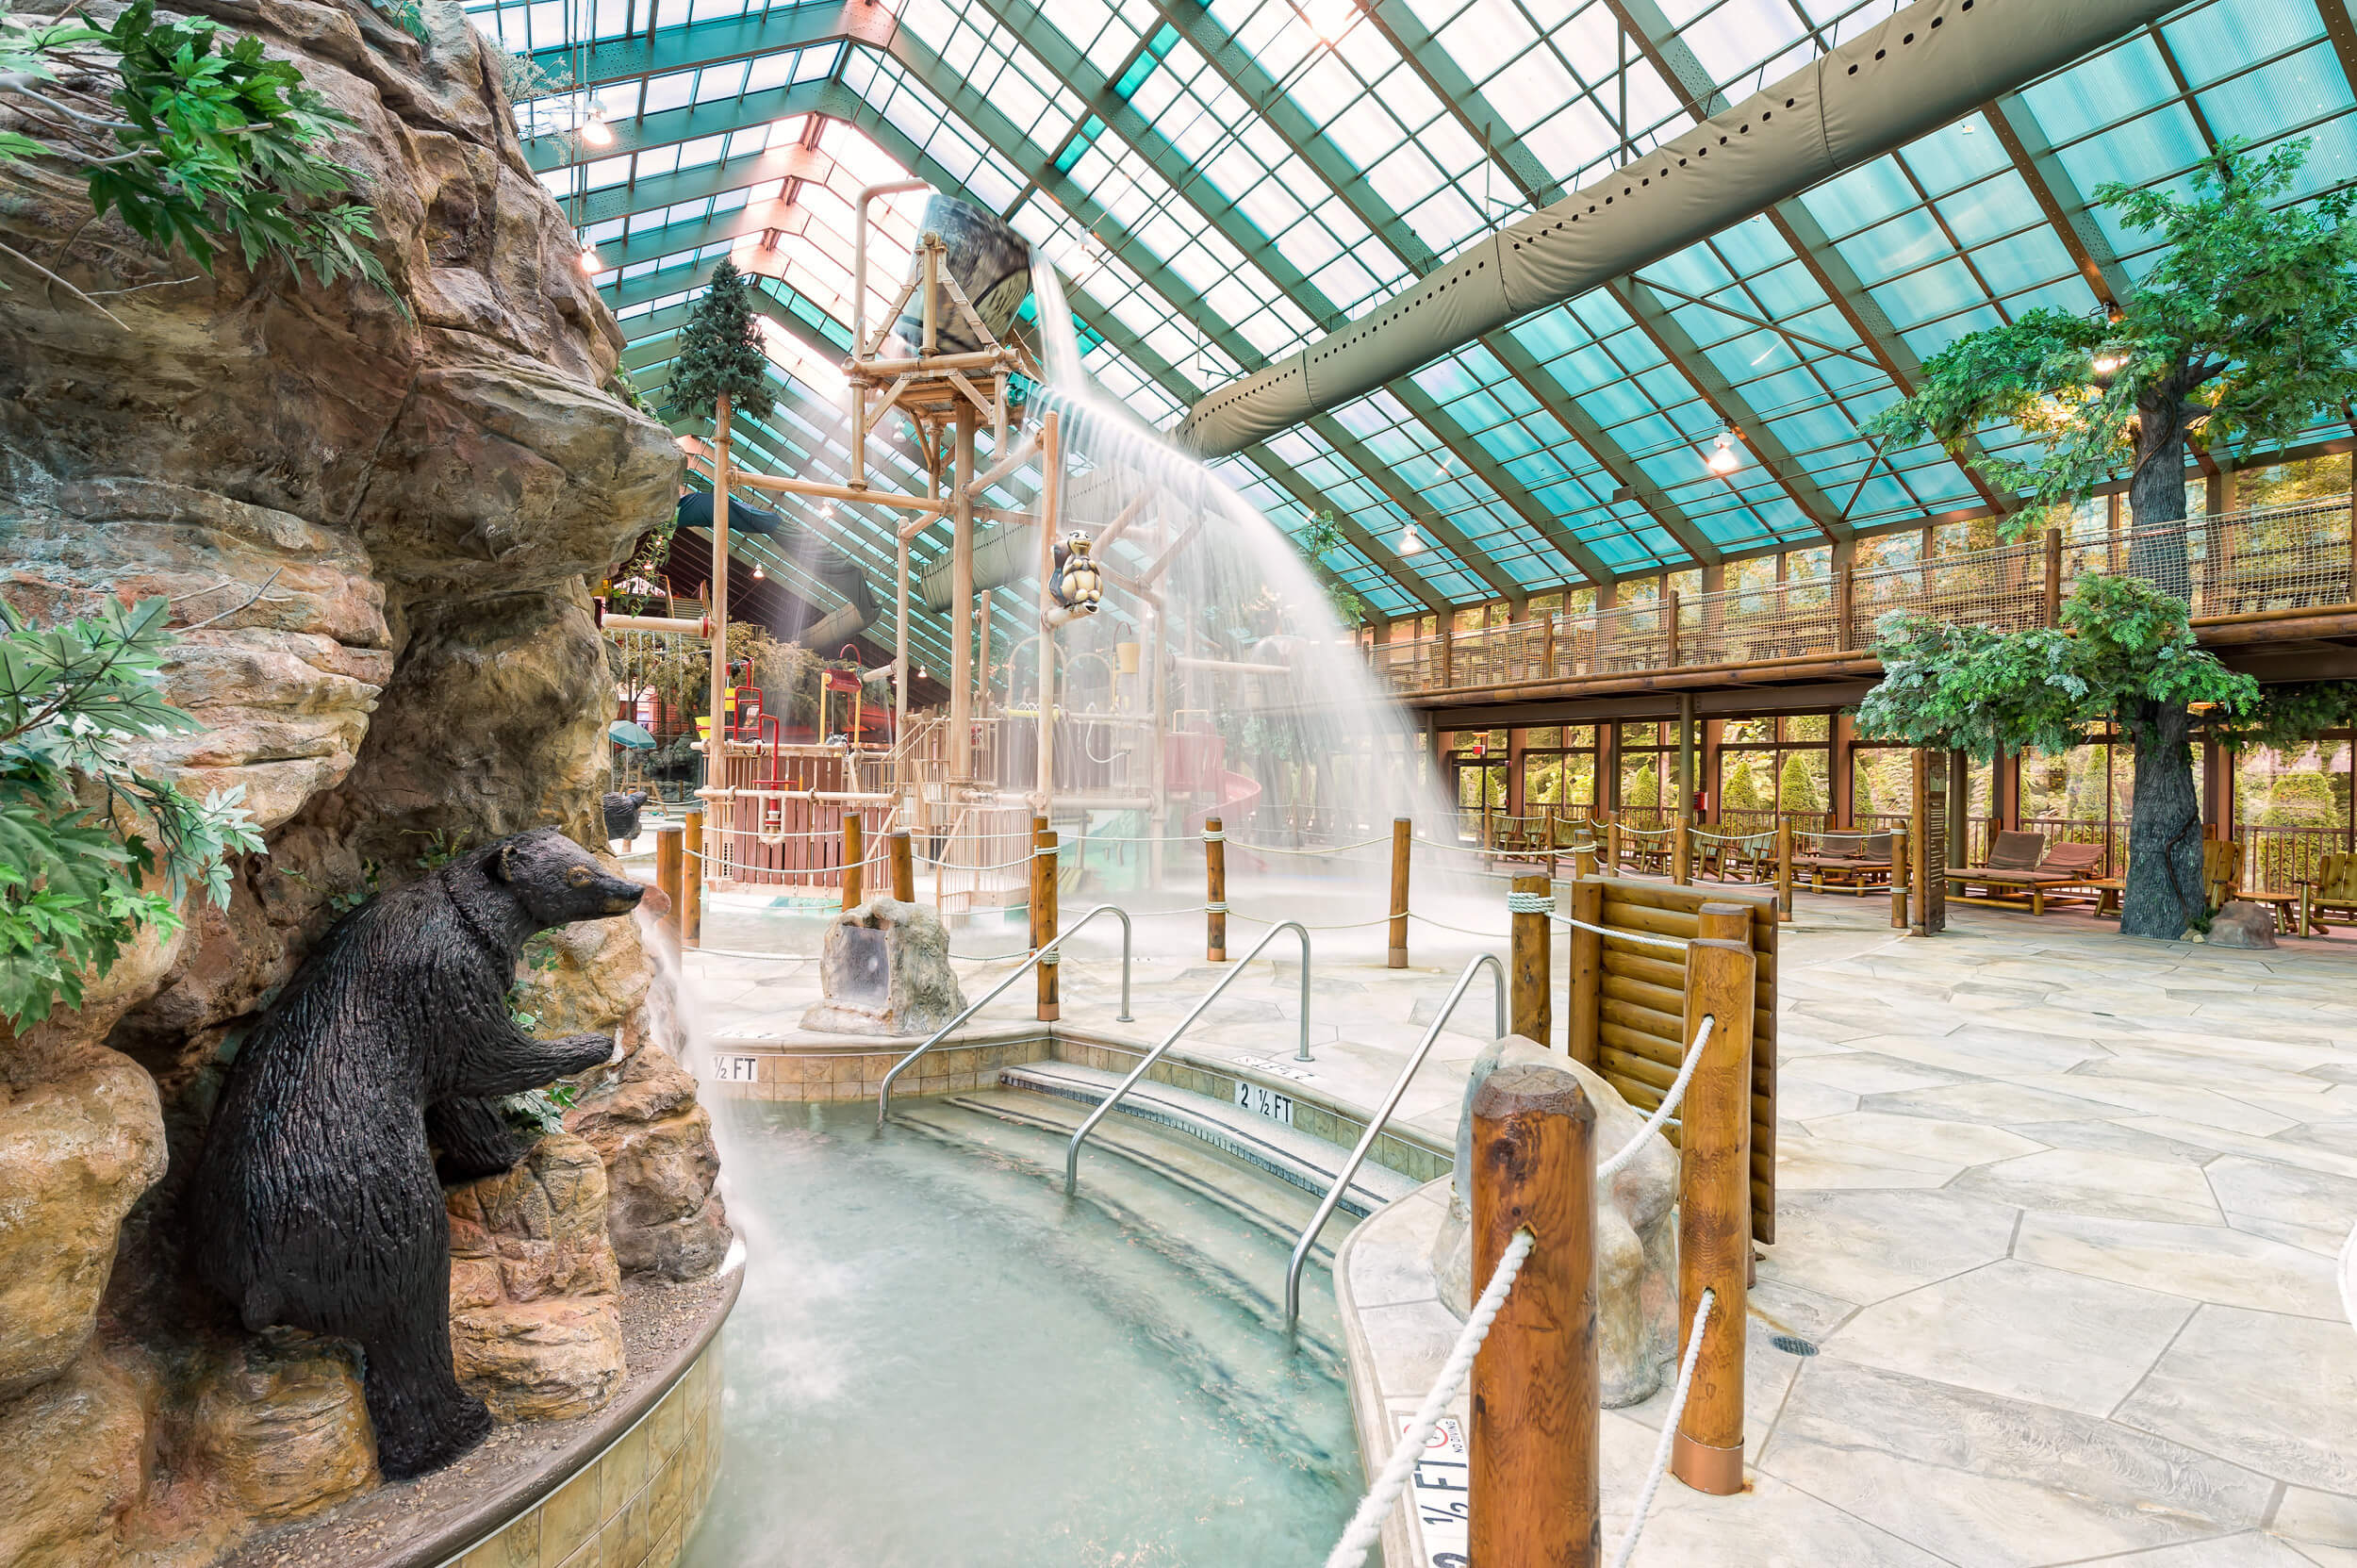 Water Parks in Tennessee | Gatlinburg Water Park | Westgate Smoky Mountain Resort & Spa - Wild Bear Falls Indoor Water Park in Tennessee